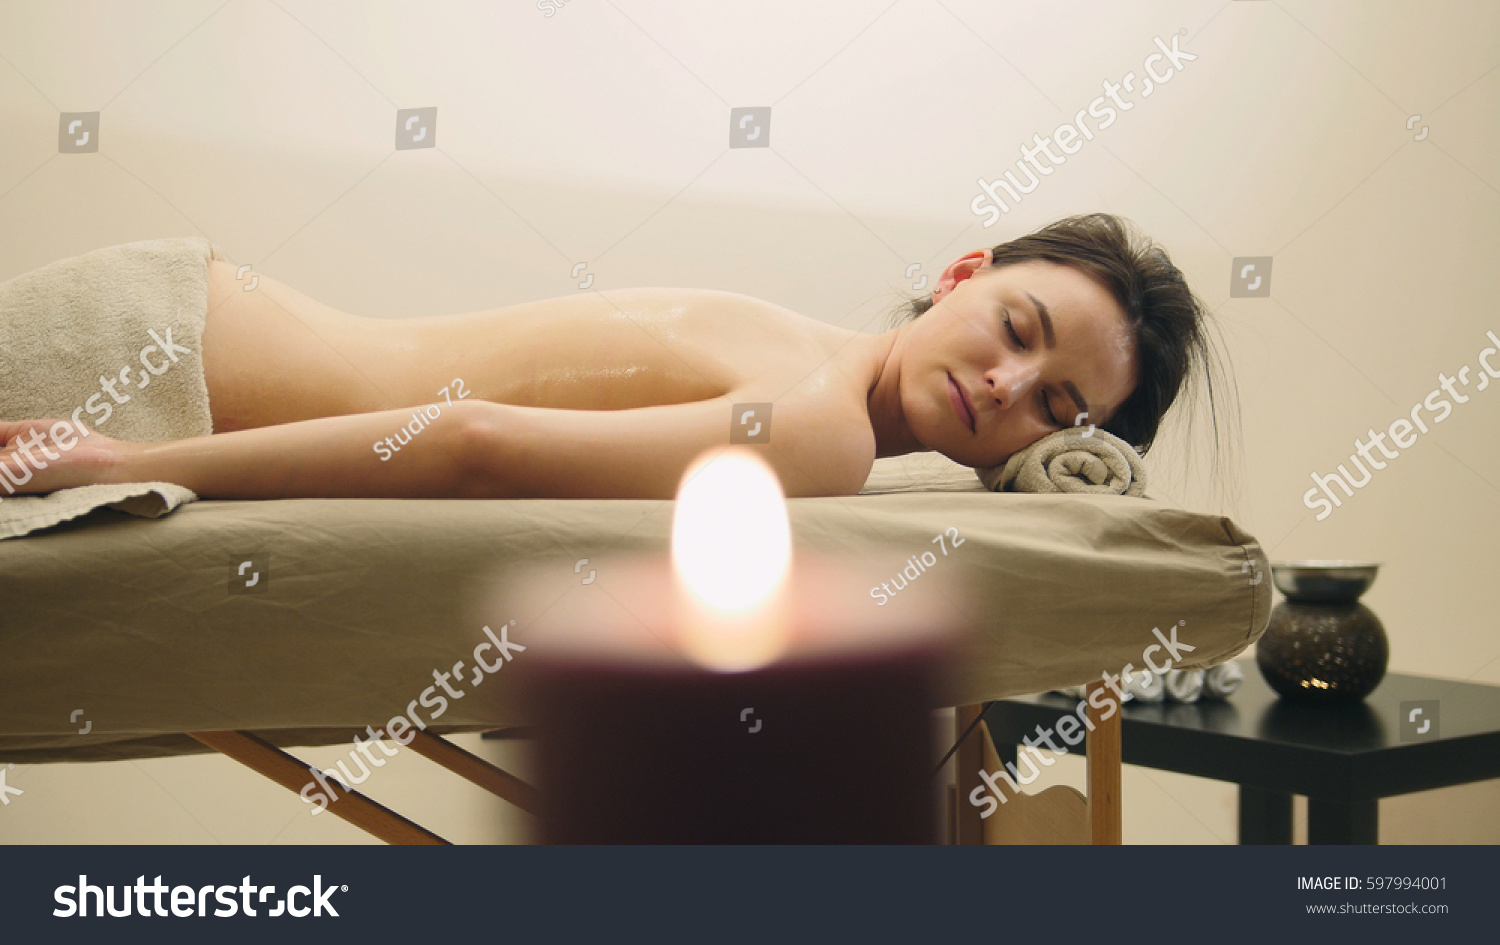 Oil relax massage - half nude young female on parlor, spa concept